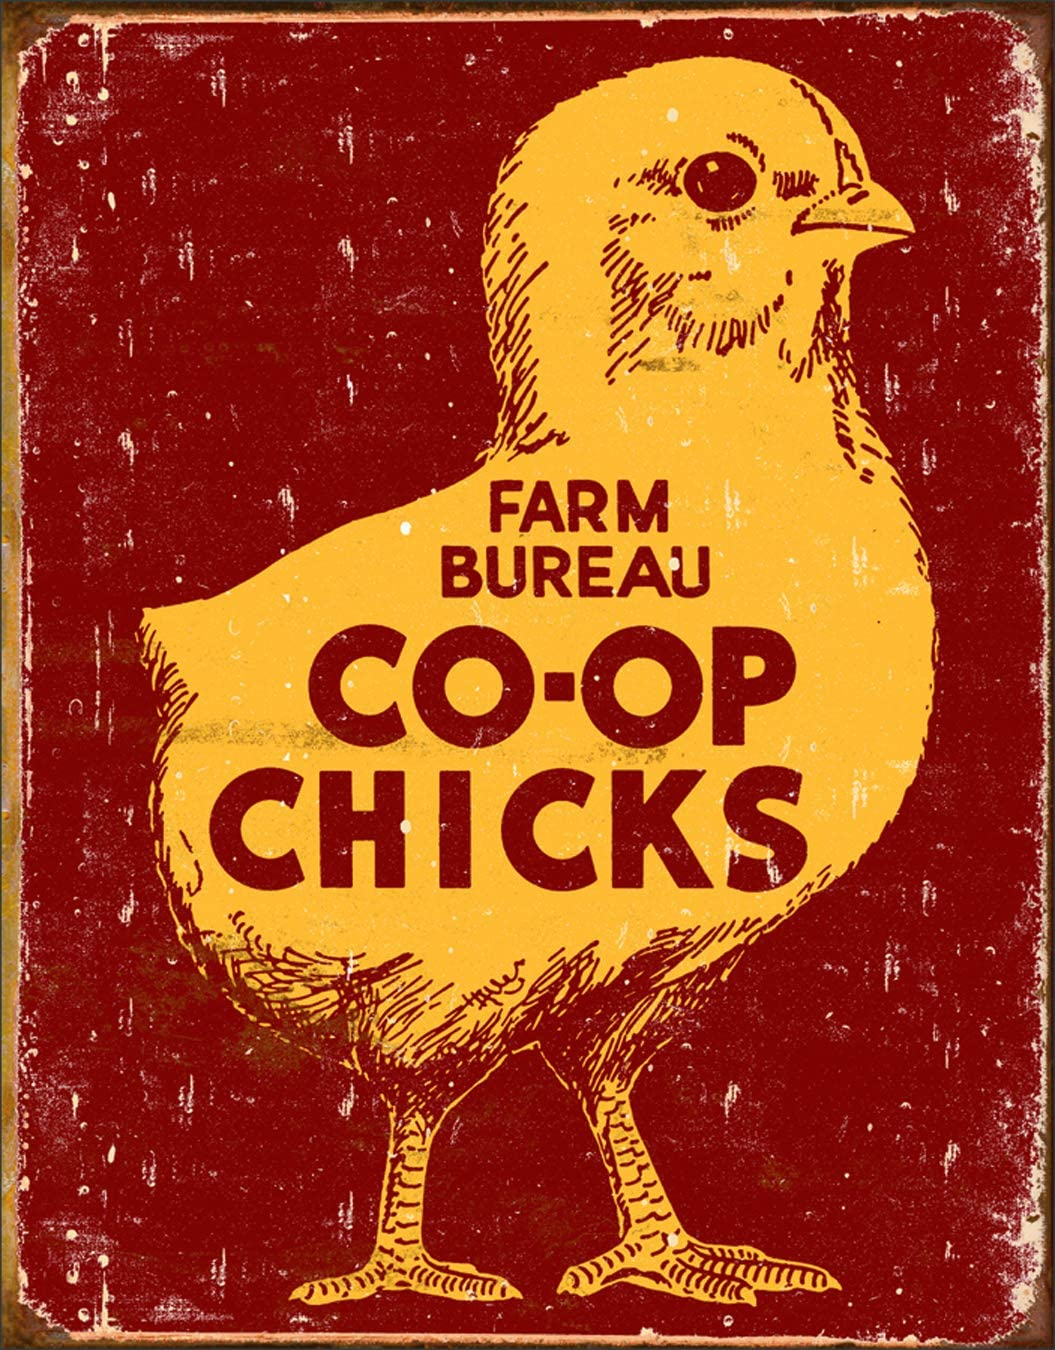 "Desperate Enterprises Farm Bureau Co-Op Chicks Tin Sign, 12.5"" W x 16"" H"